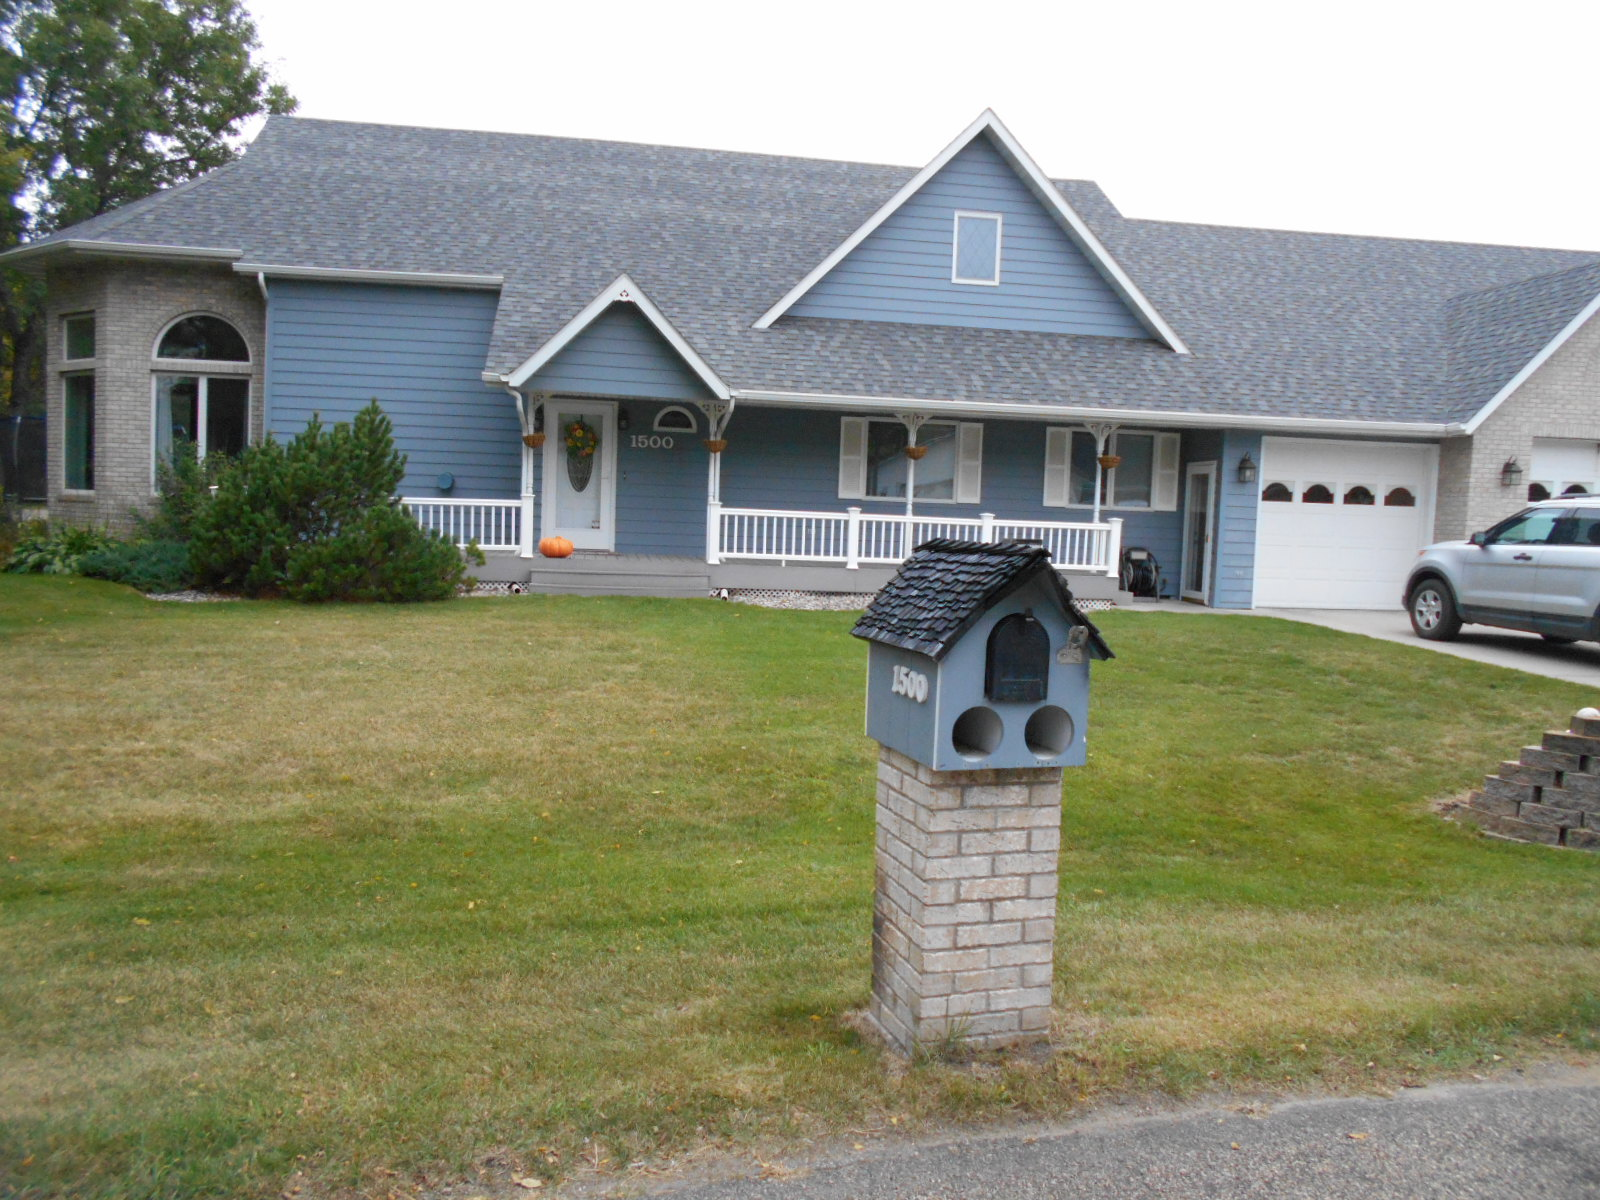 1500 9th Ave SE, Jamestown, North Dakota 58401